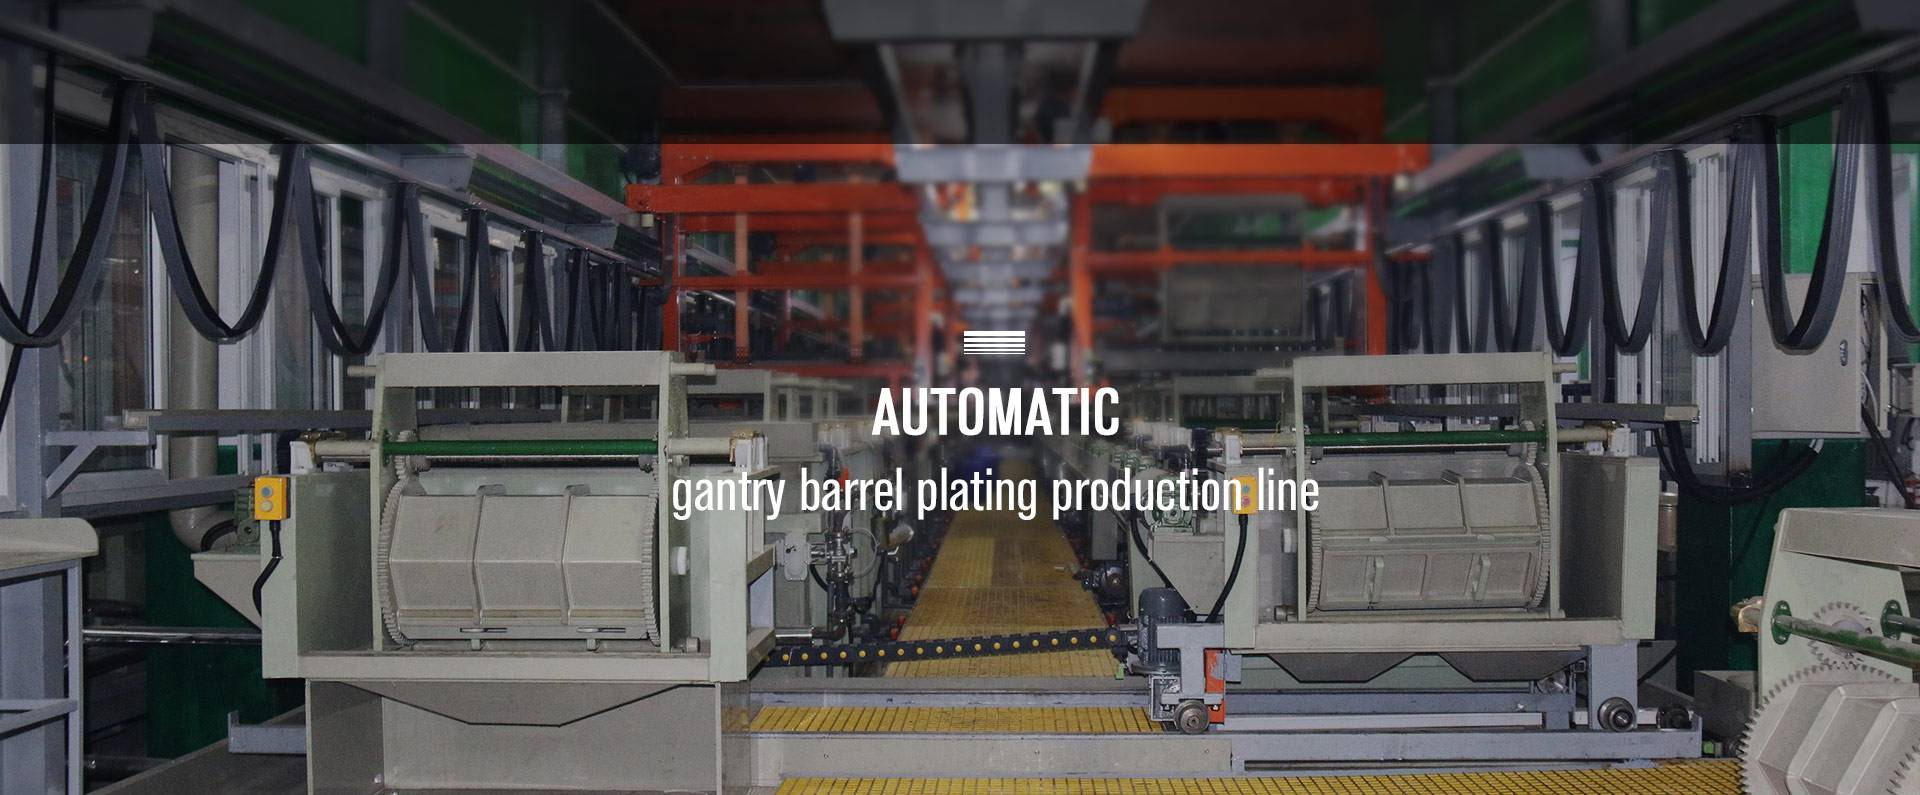 automatic-gantry-barrel